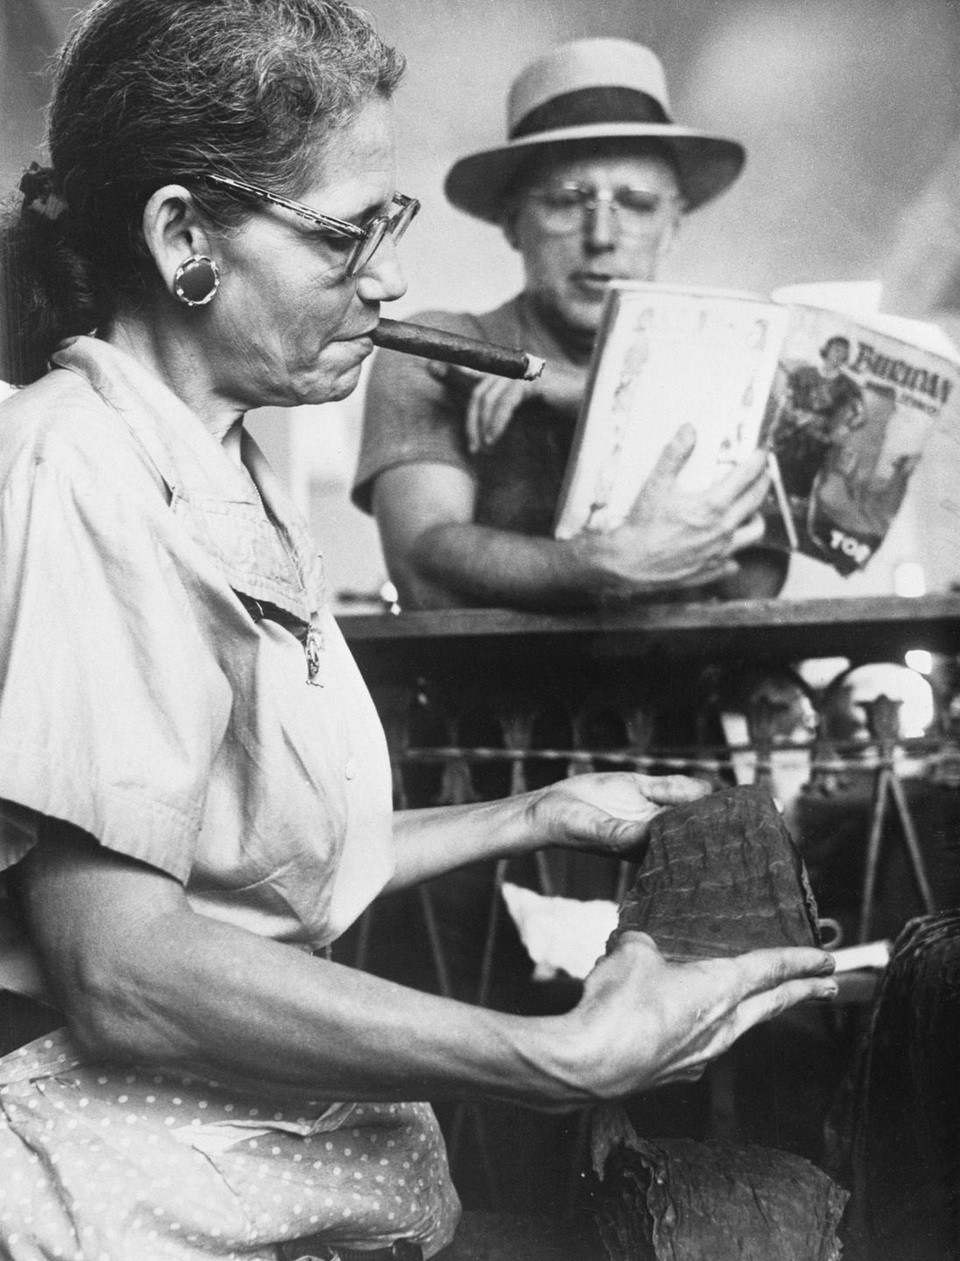 A lector reads a book to a worker in the Piedra Cigar factory in Maianao Cuba